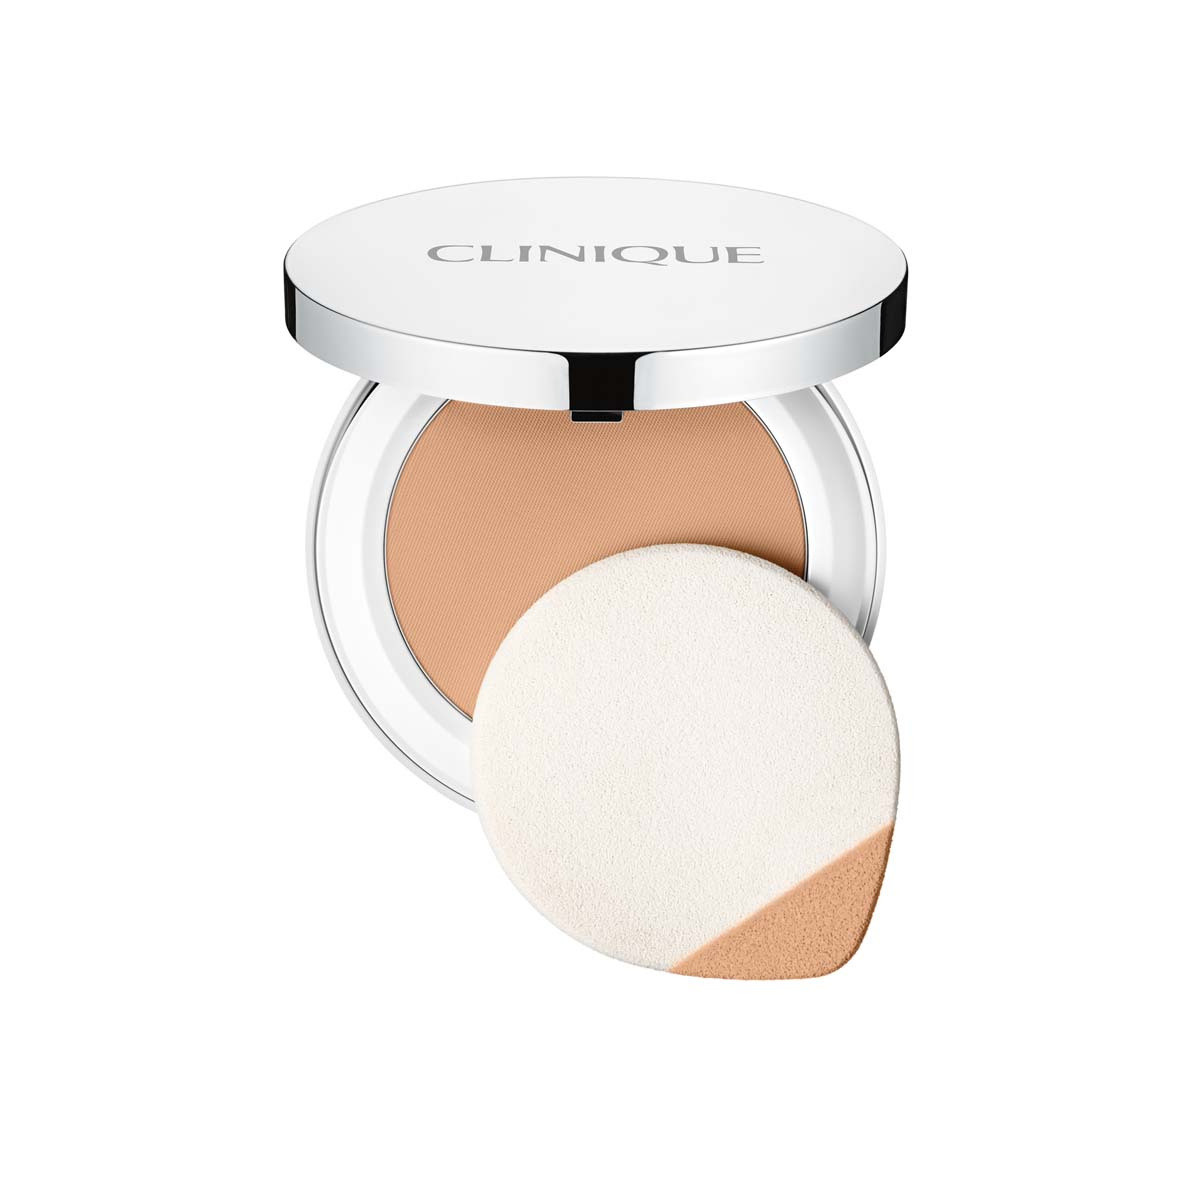 Clinique beyond perfecting powder foundation, 15 BEIGE, large image number 0